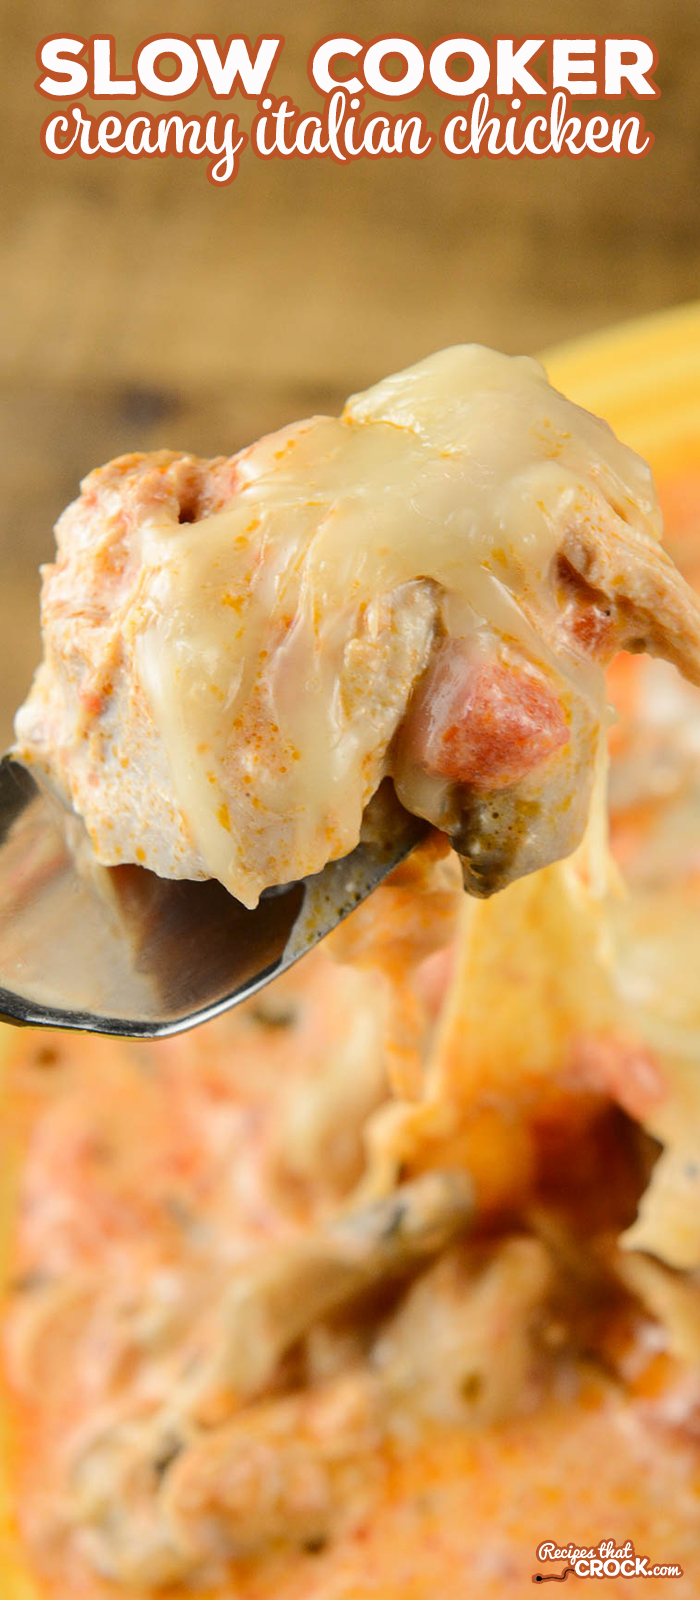 Slow Cooker Creamy Italian Chicken Recipes That Crock